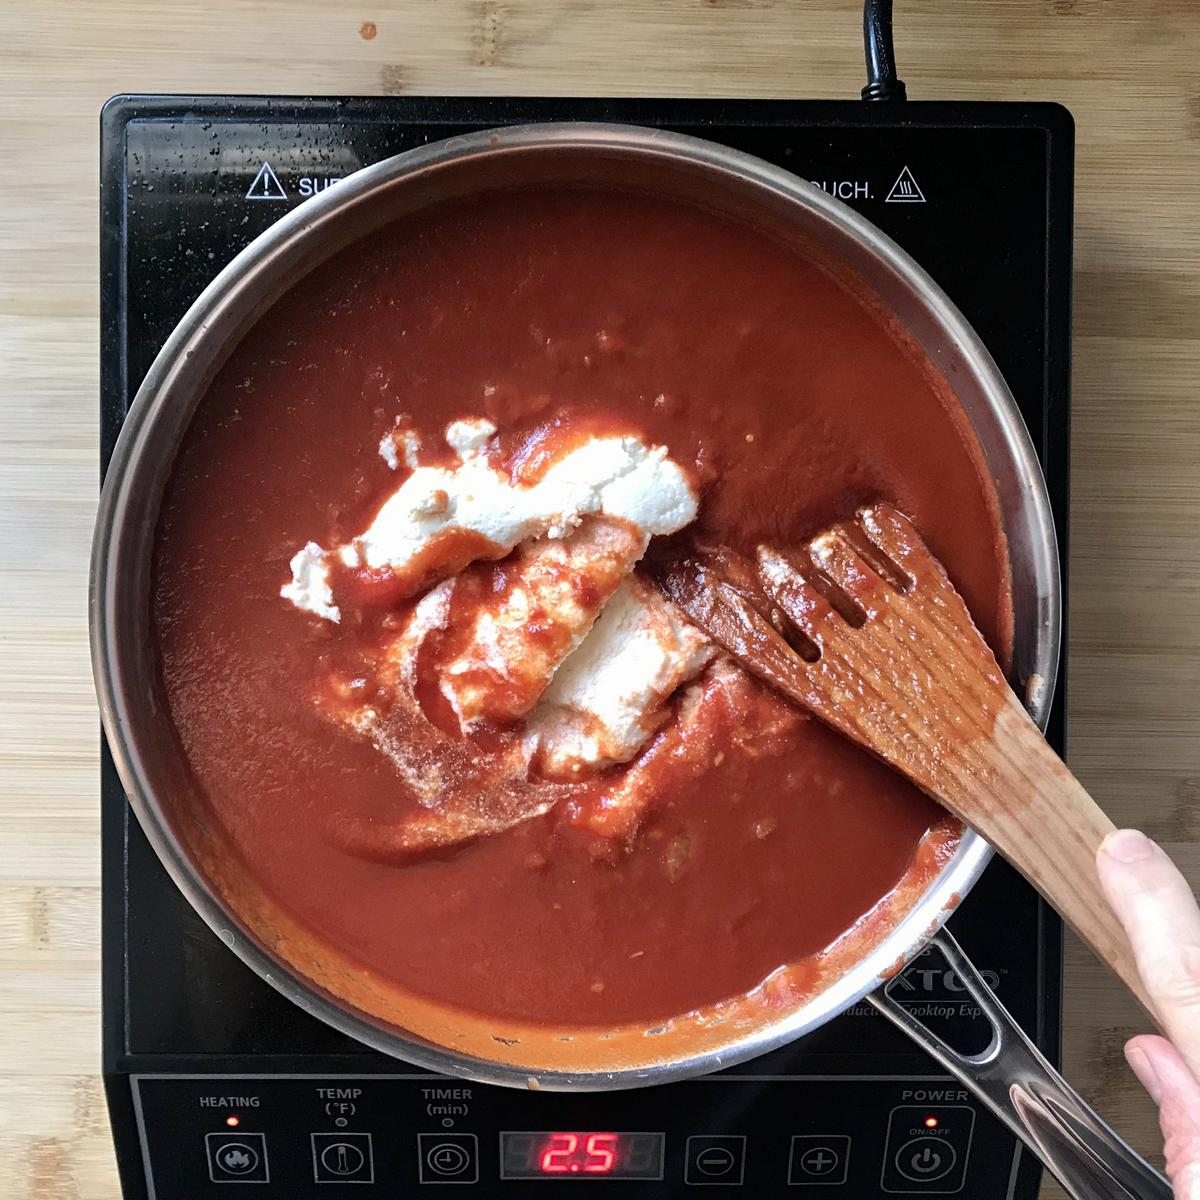 Ricotta cheese is added to tomato sauce in a saucepan.